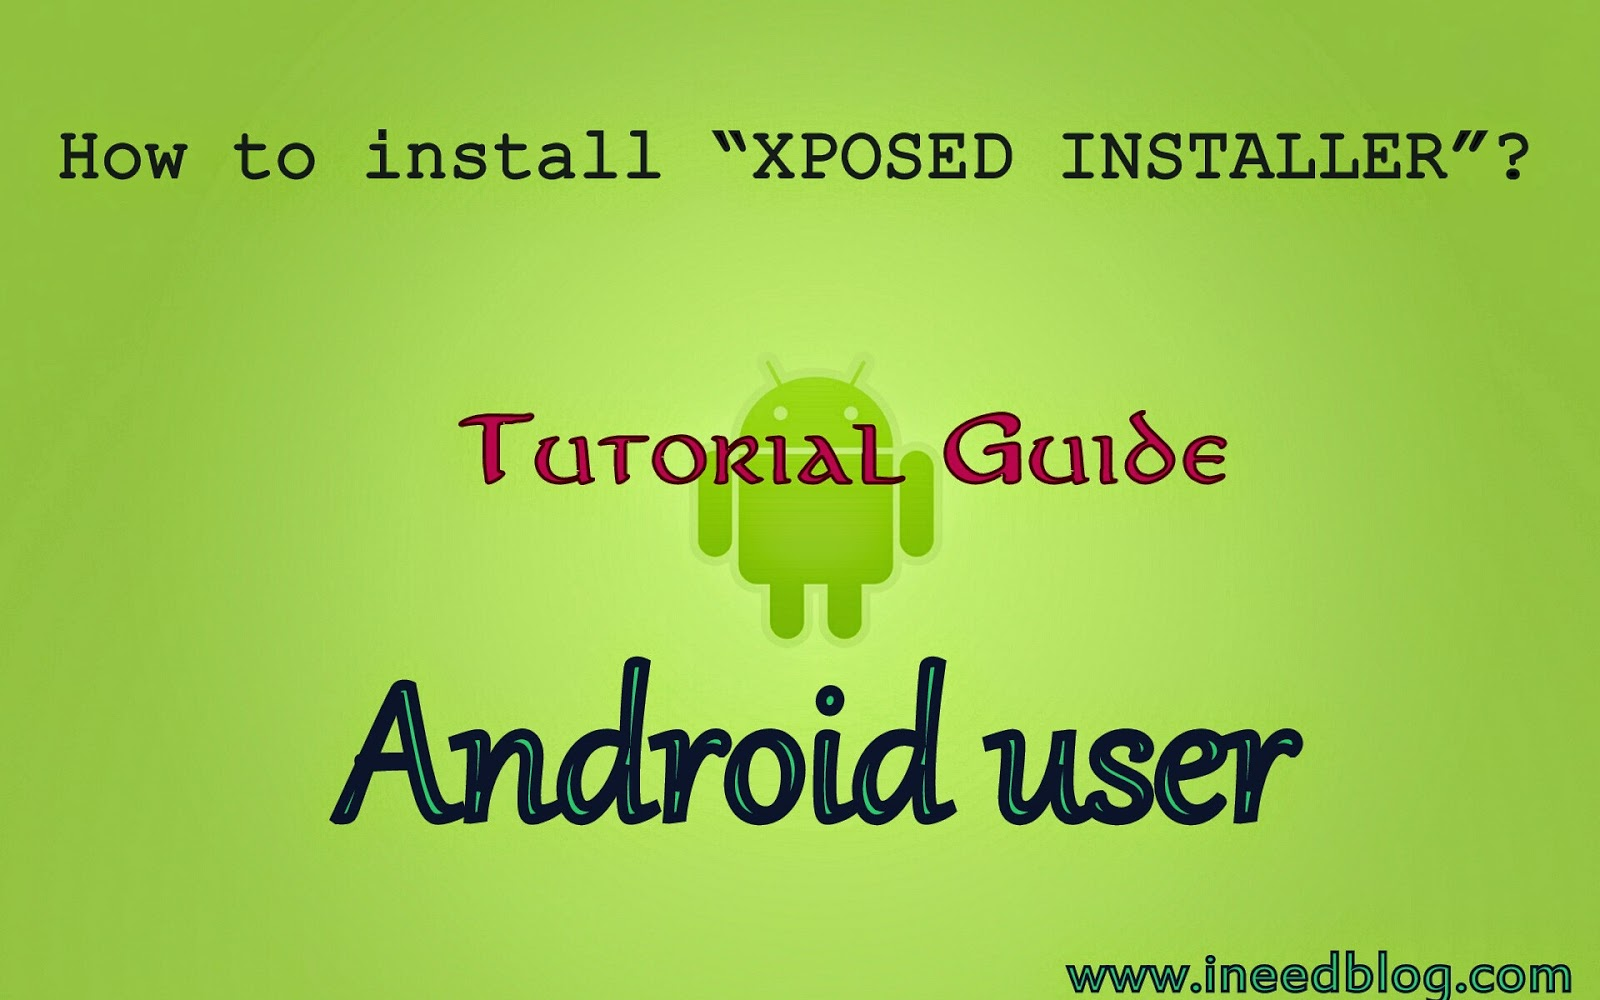 Install xposed modules.